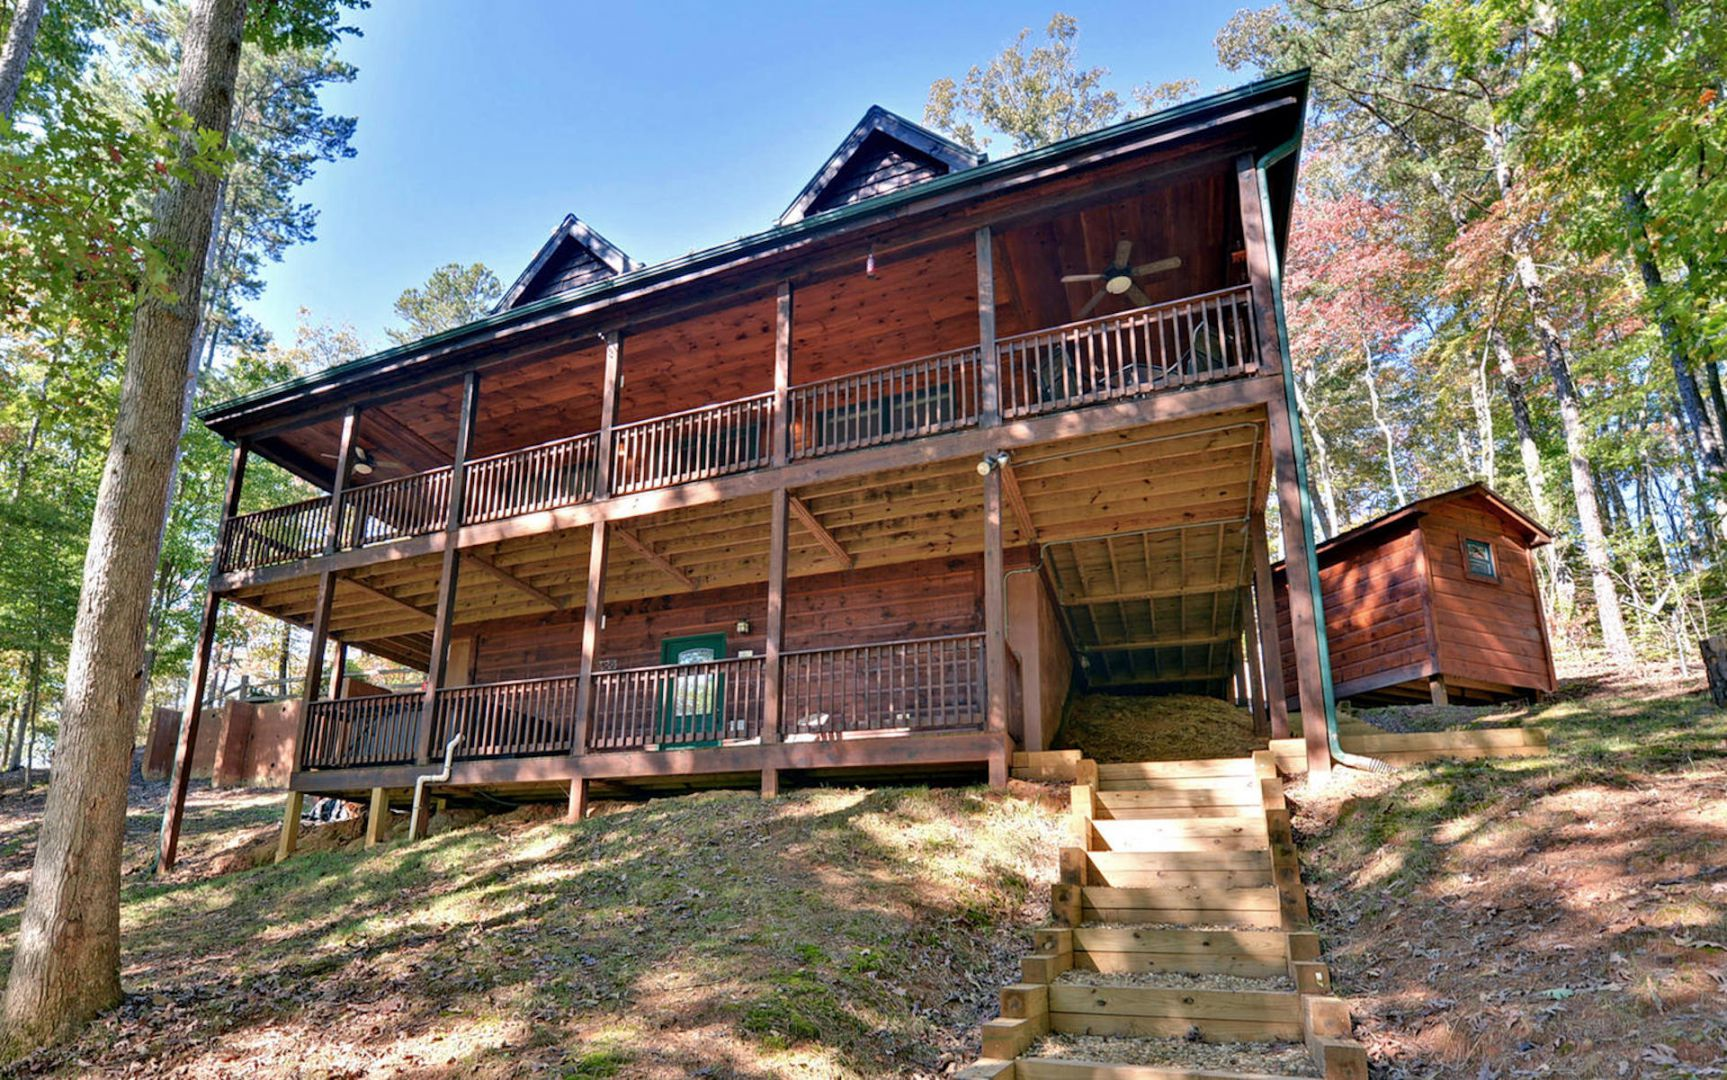 100 Acre Wood Rental Cabin